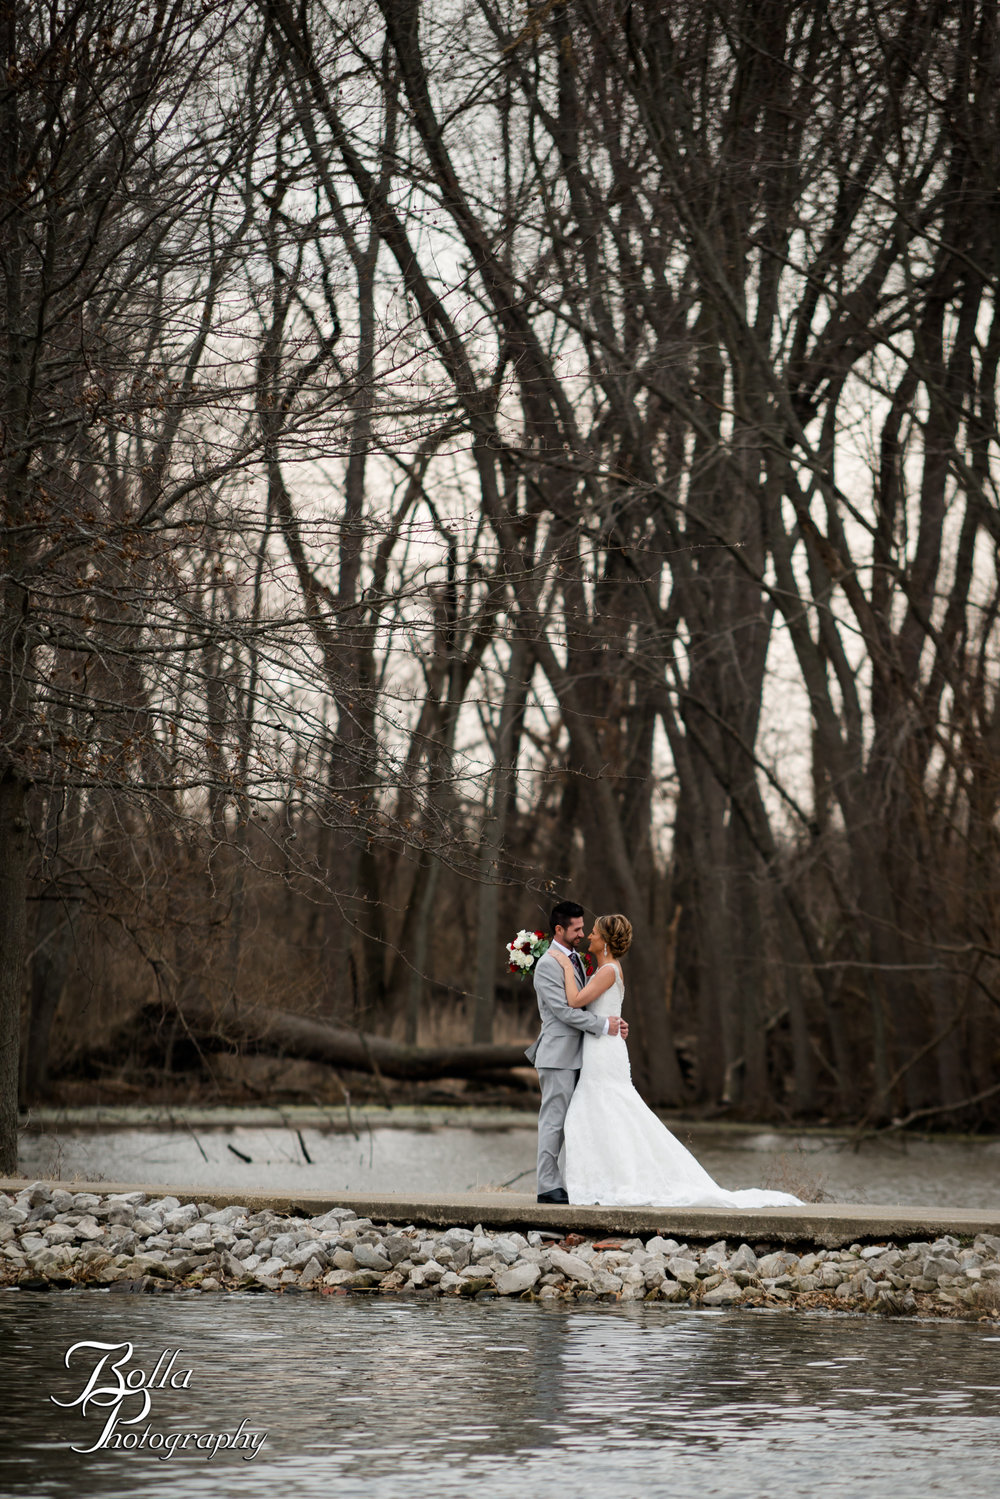 Bolla_photography_edwardsville_wedding_photographer_st_louis_weddings_highland_Allen_Warren_winter_red-0148.jpg